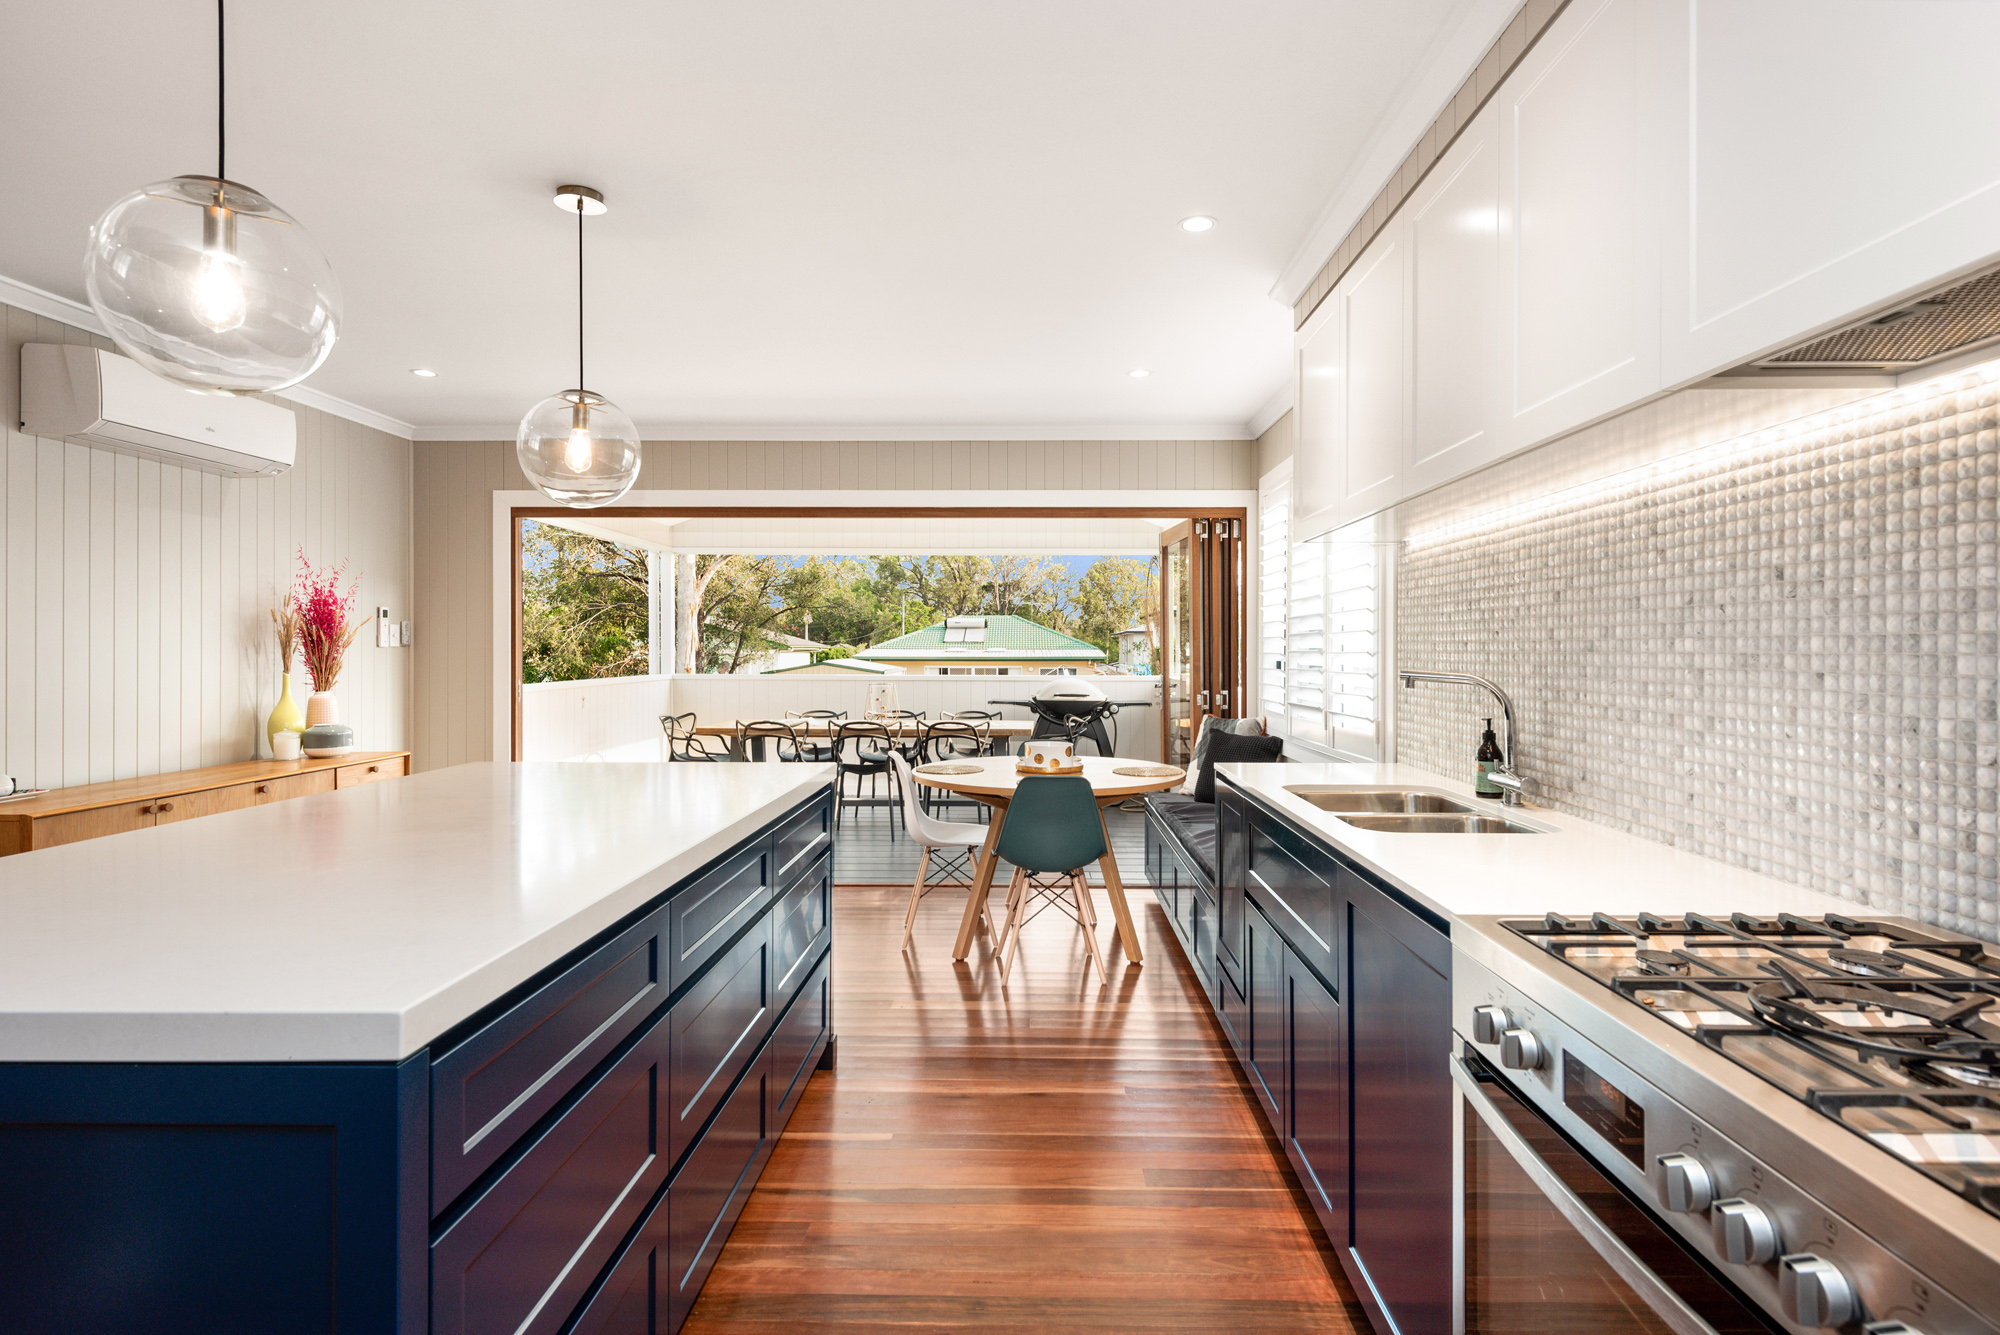 Kitchen for an extension in Oxley Brisbane